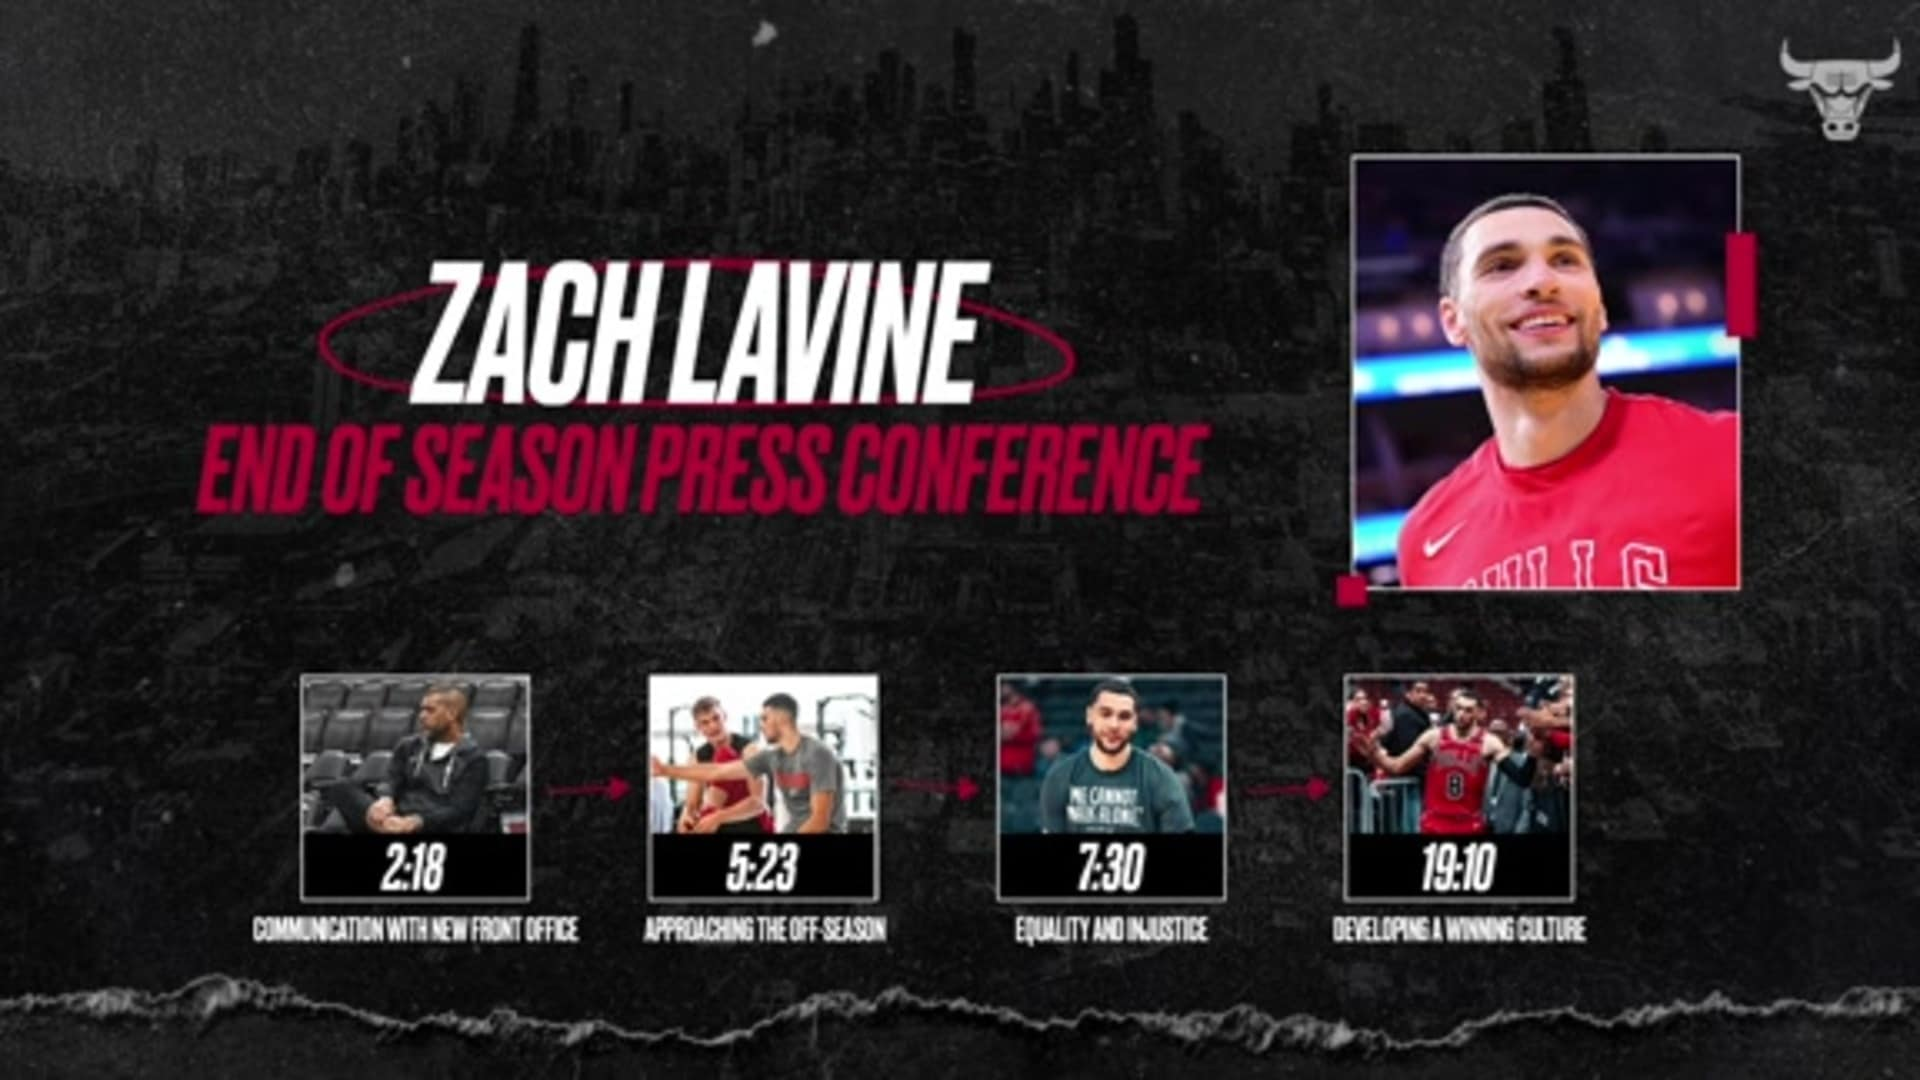 Zach LaVine End of Season Press Conference